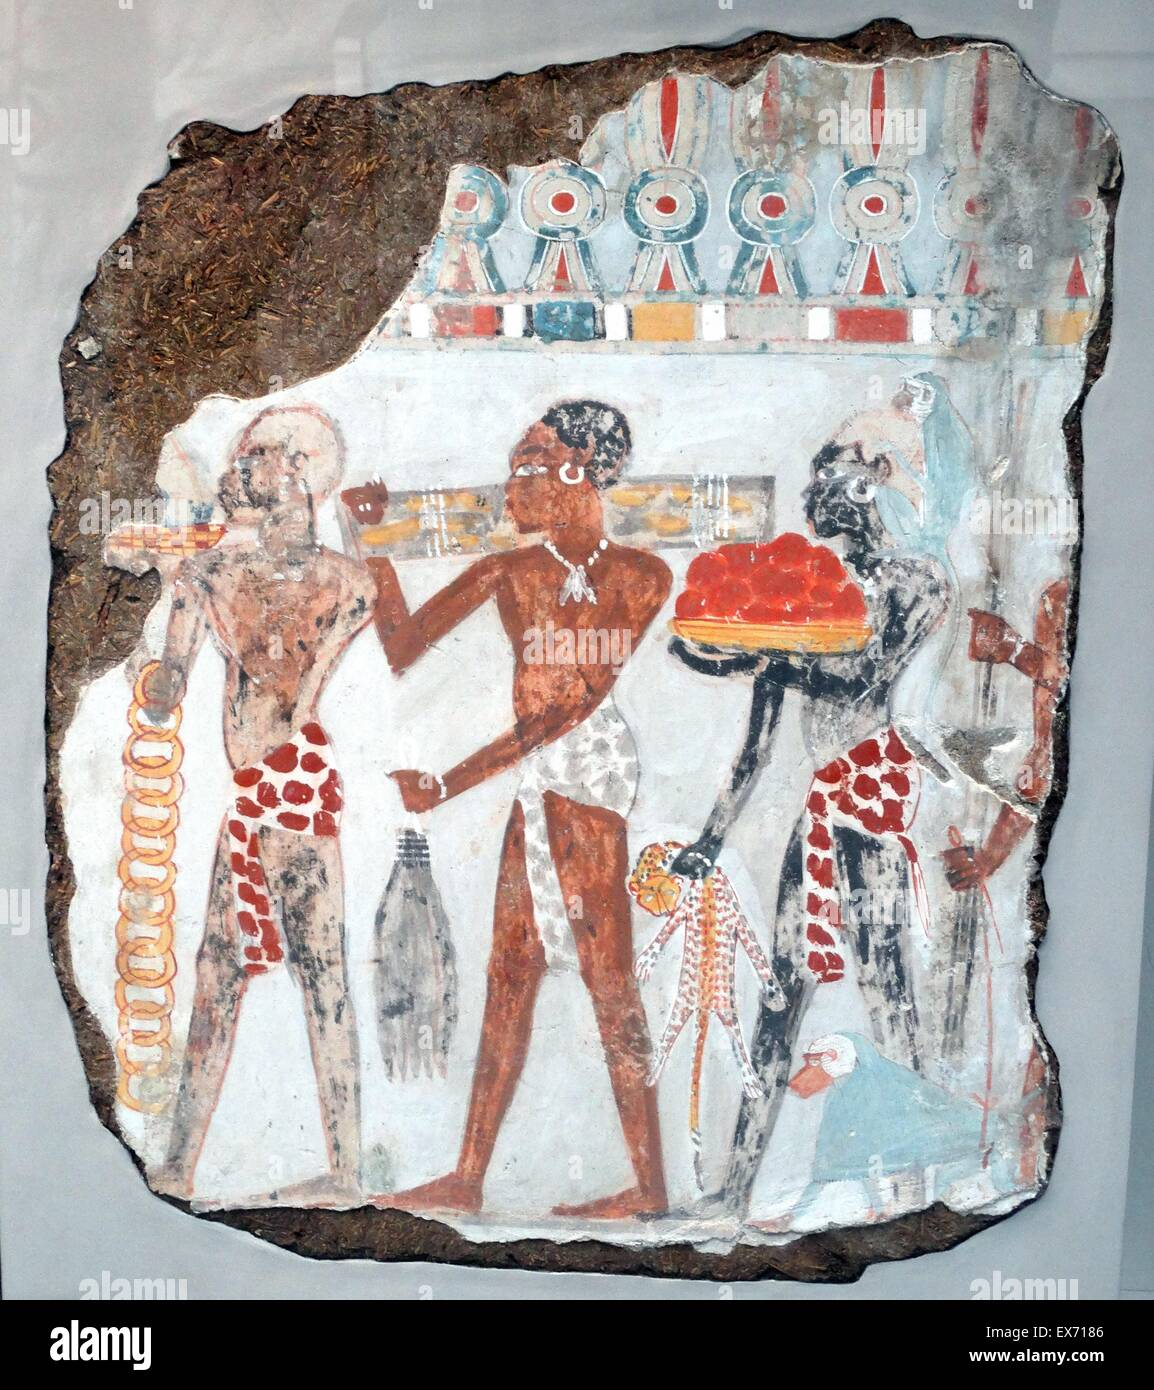 1000 images about e artifacts on pinterest egypt for Egyptian mural paintings